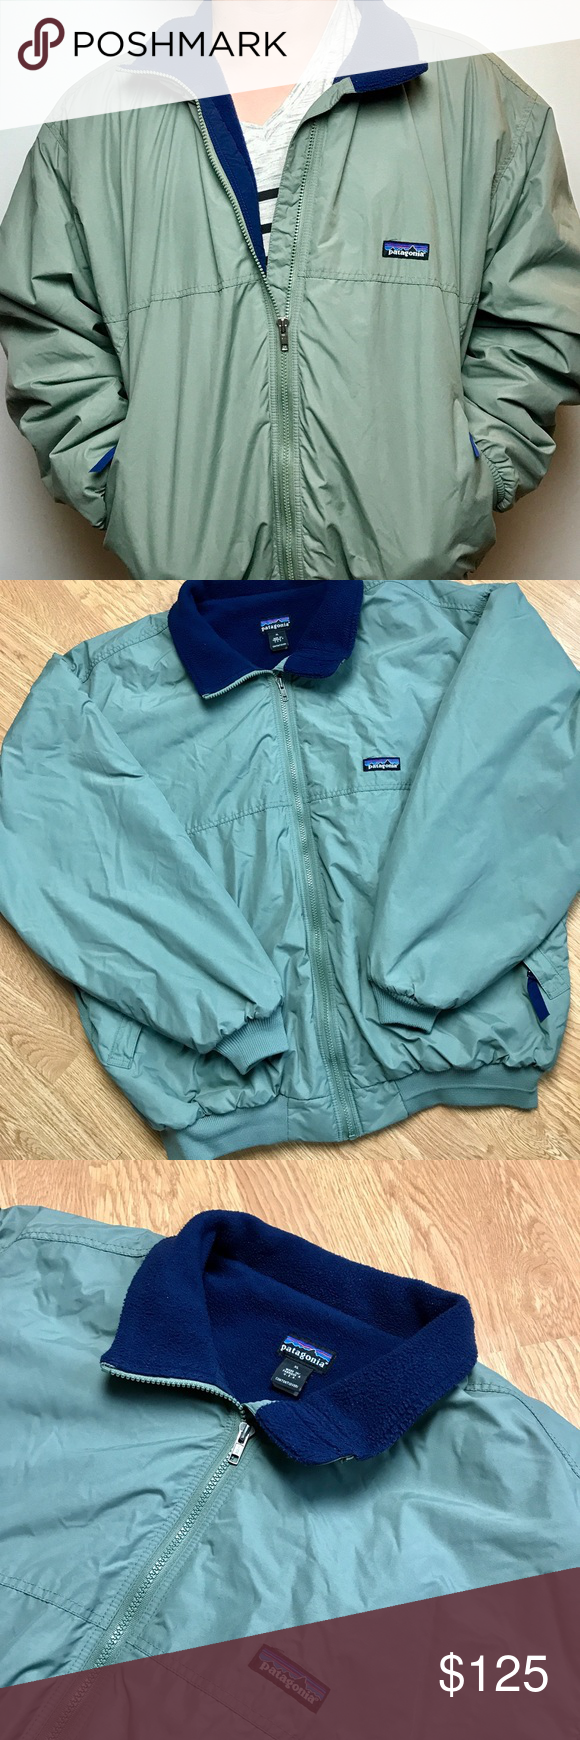 Patagonia Olive Green Bomber Surfrider Jacket Xl Jackets Green Bomber Clothes Design [ 1740 x 580 Pixel ]